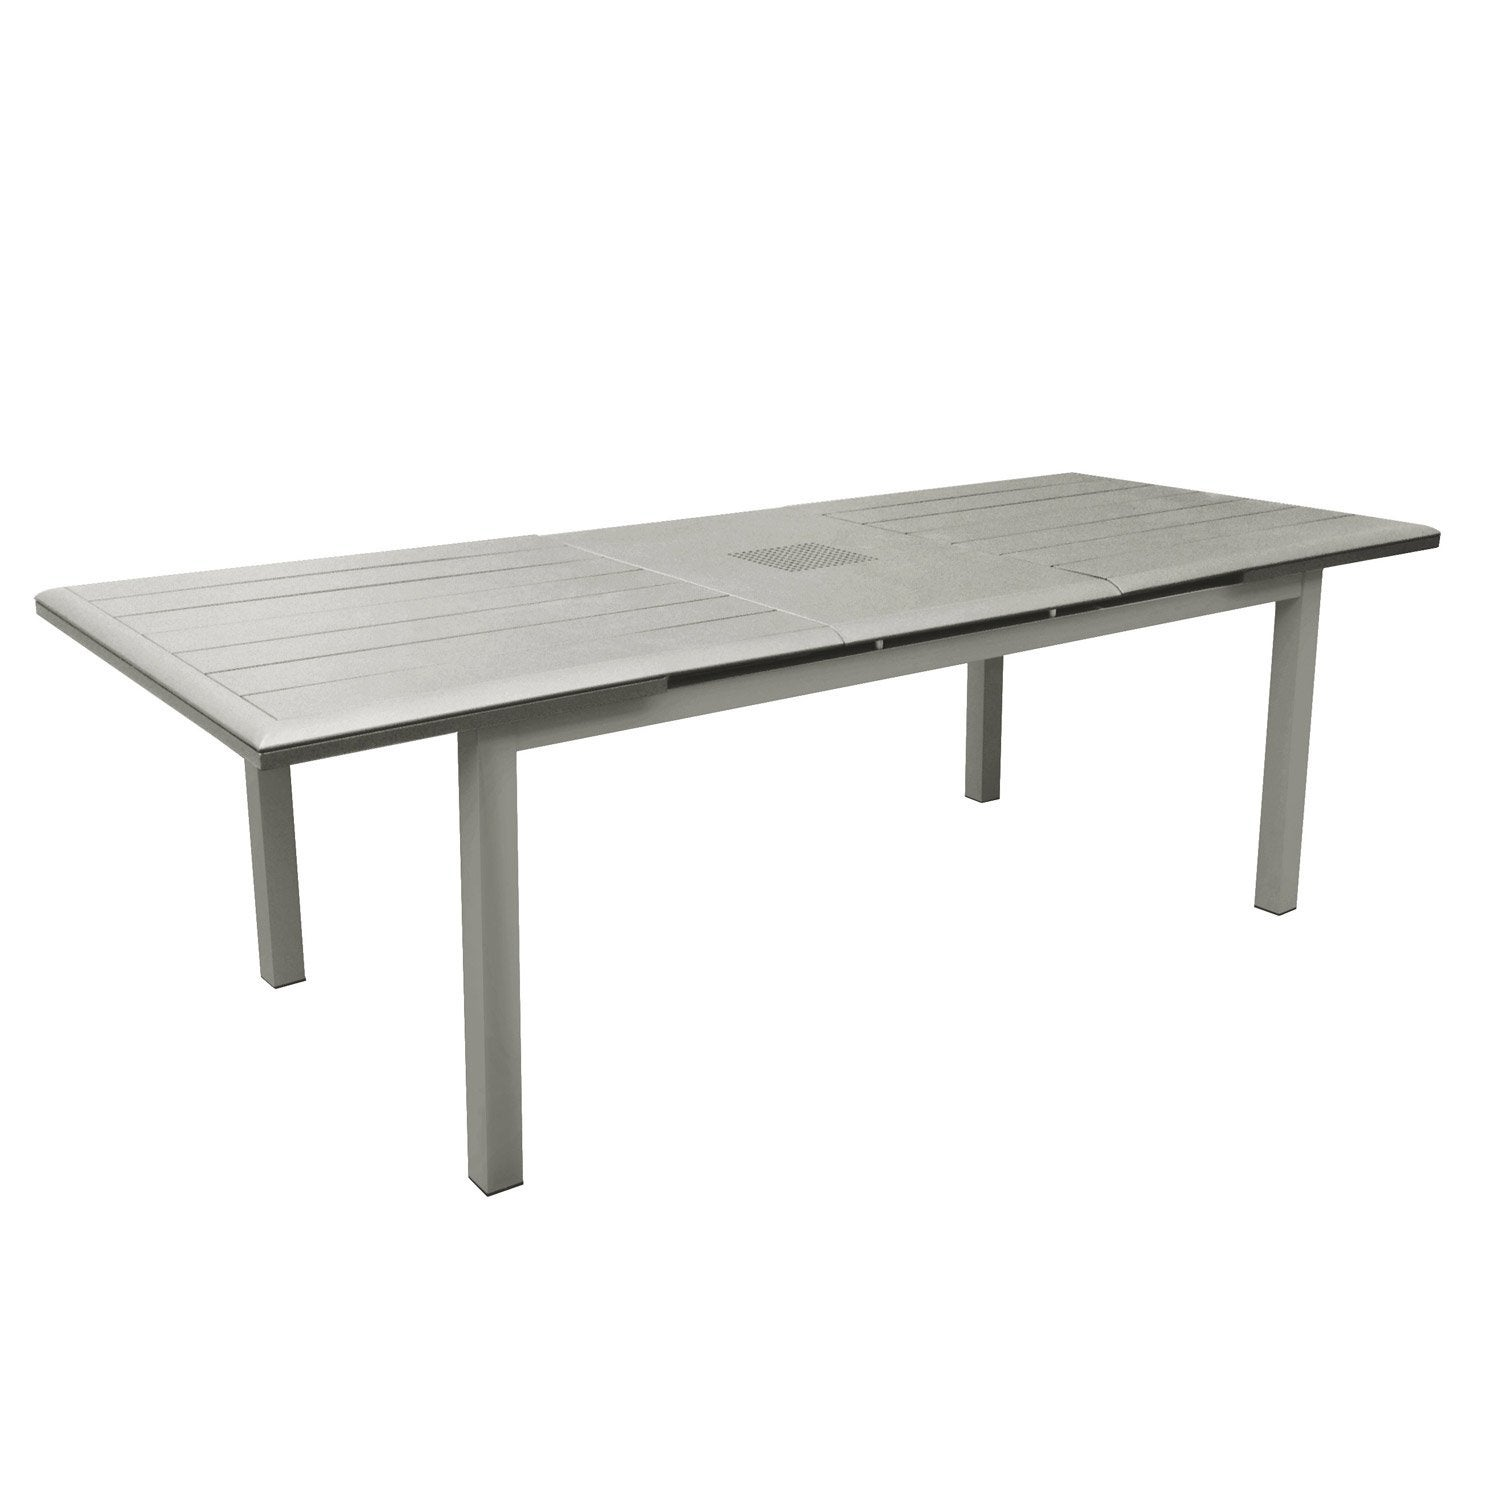 Housse table de jardin leroy merlin d coration de maison for Table extensible leroy merlin